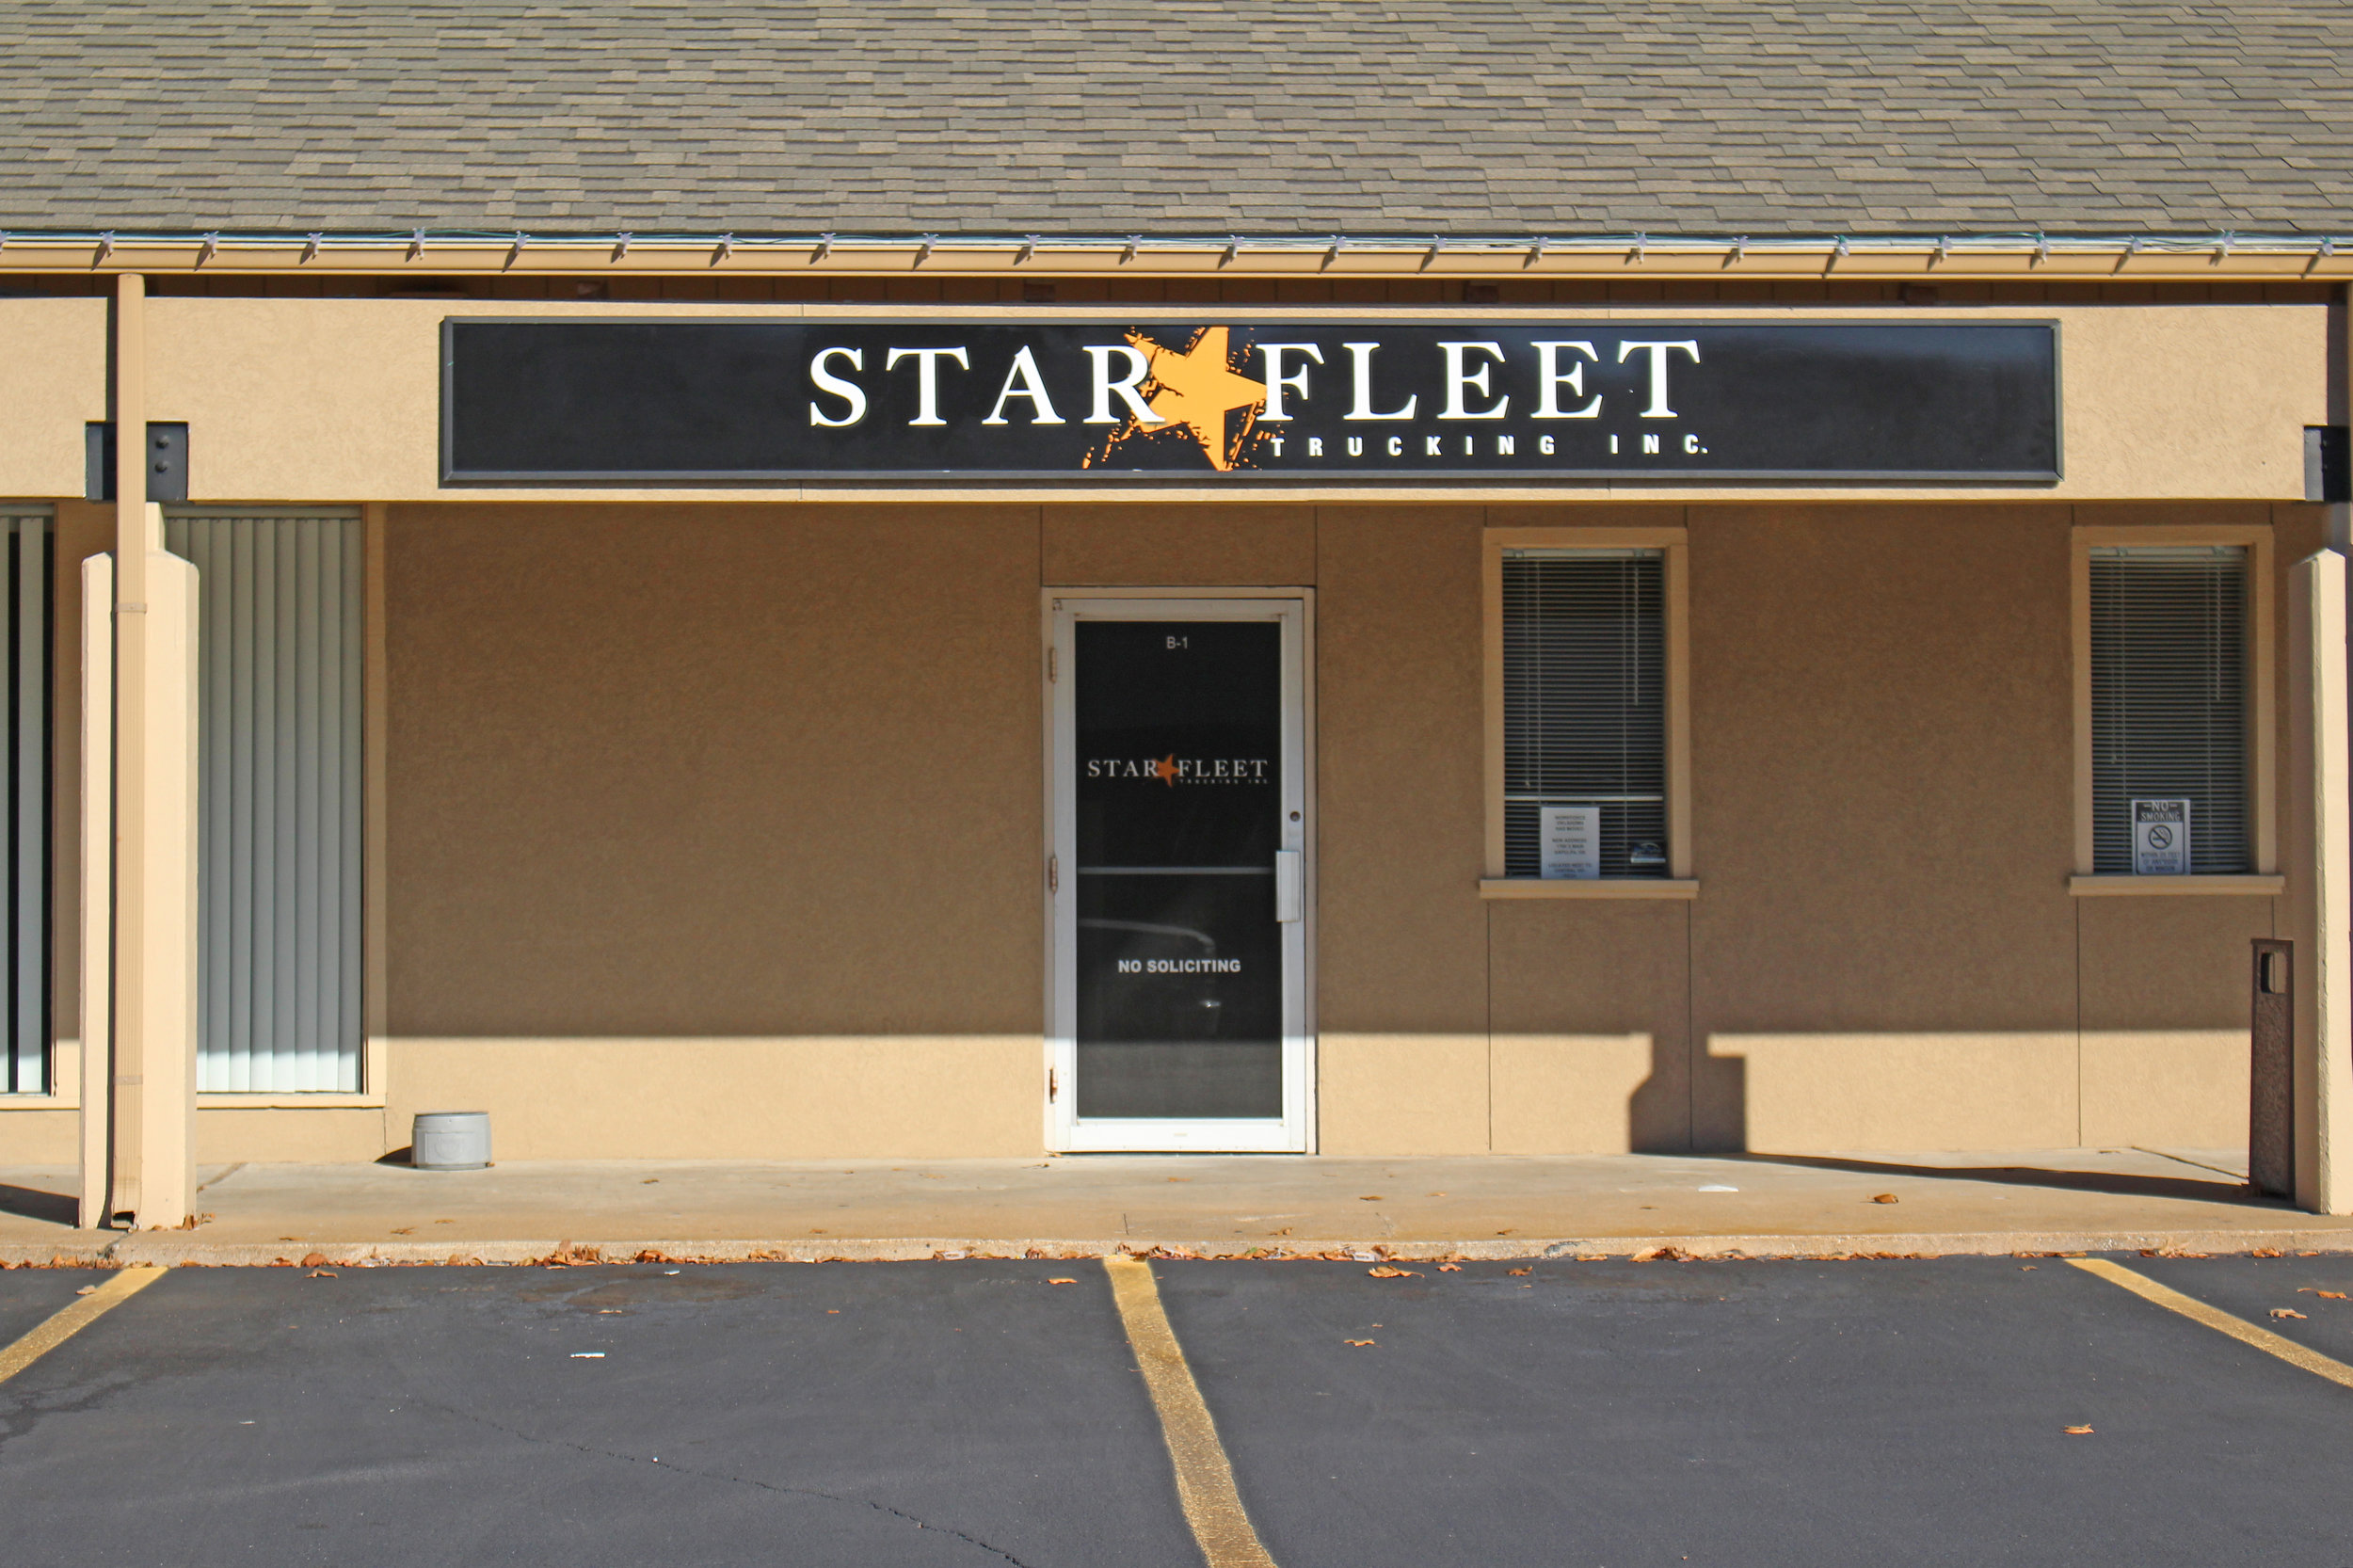 star fleet trucking - village square 401 east broadway street